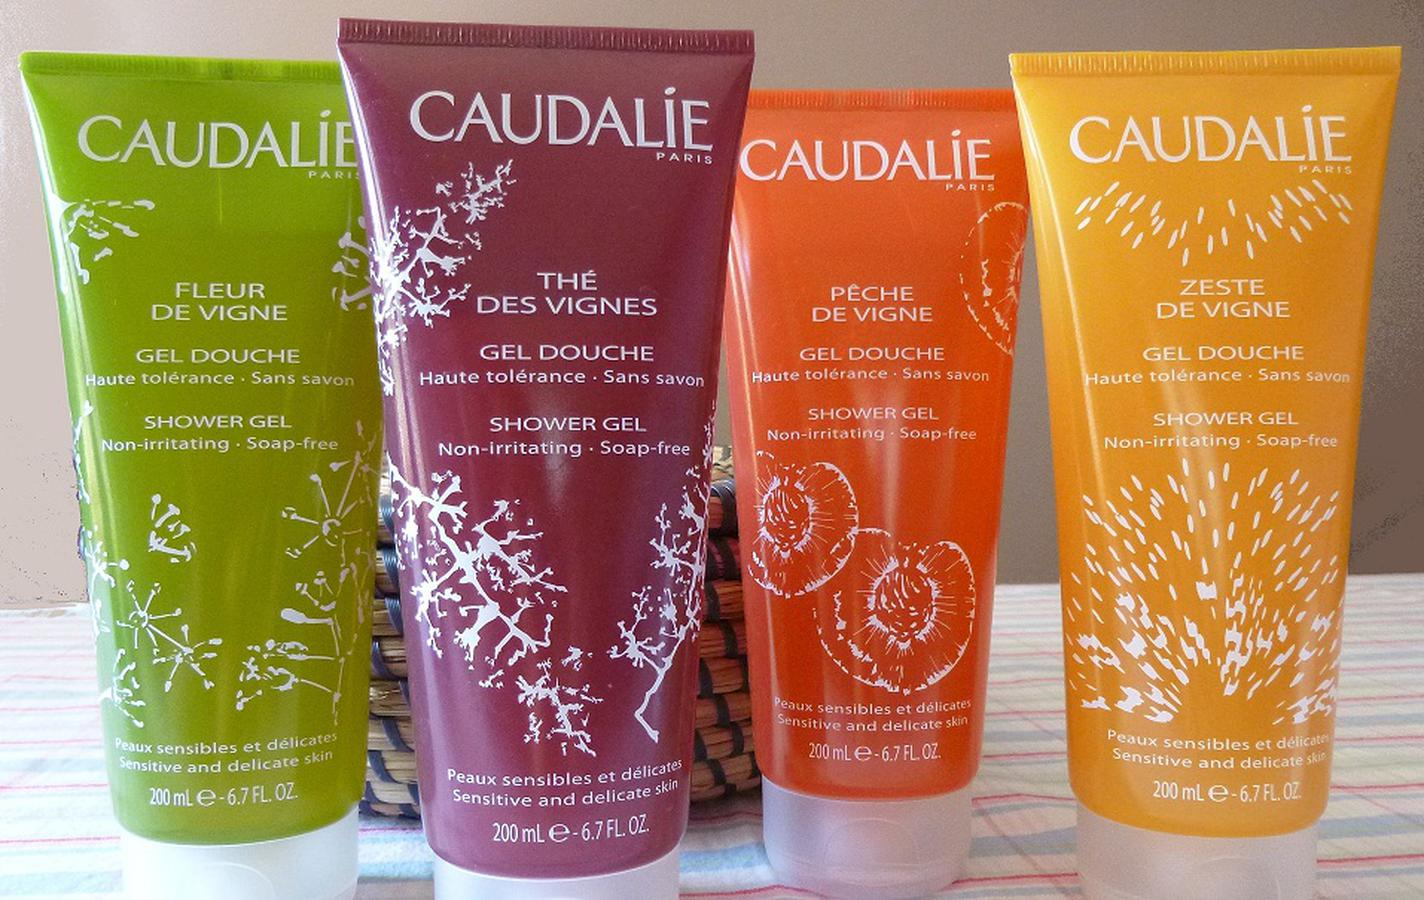 Sữa Tắm Caudalie Douche Shower Gel 200ml